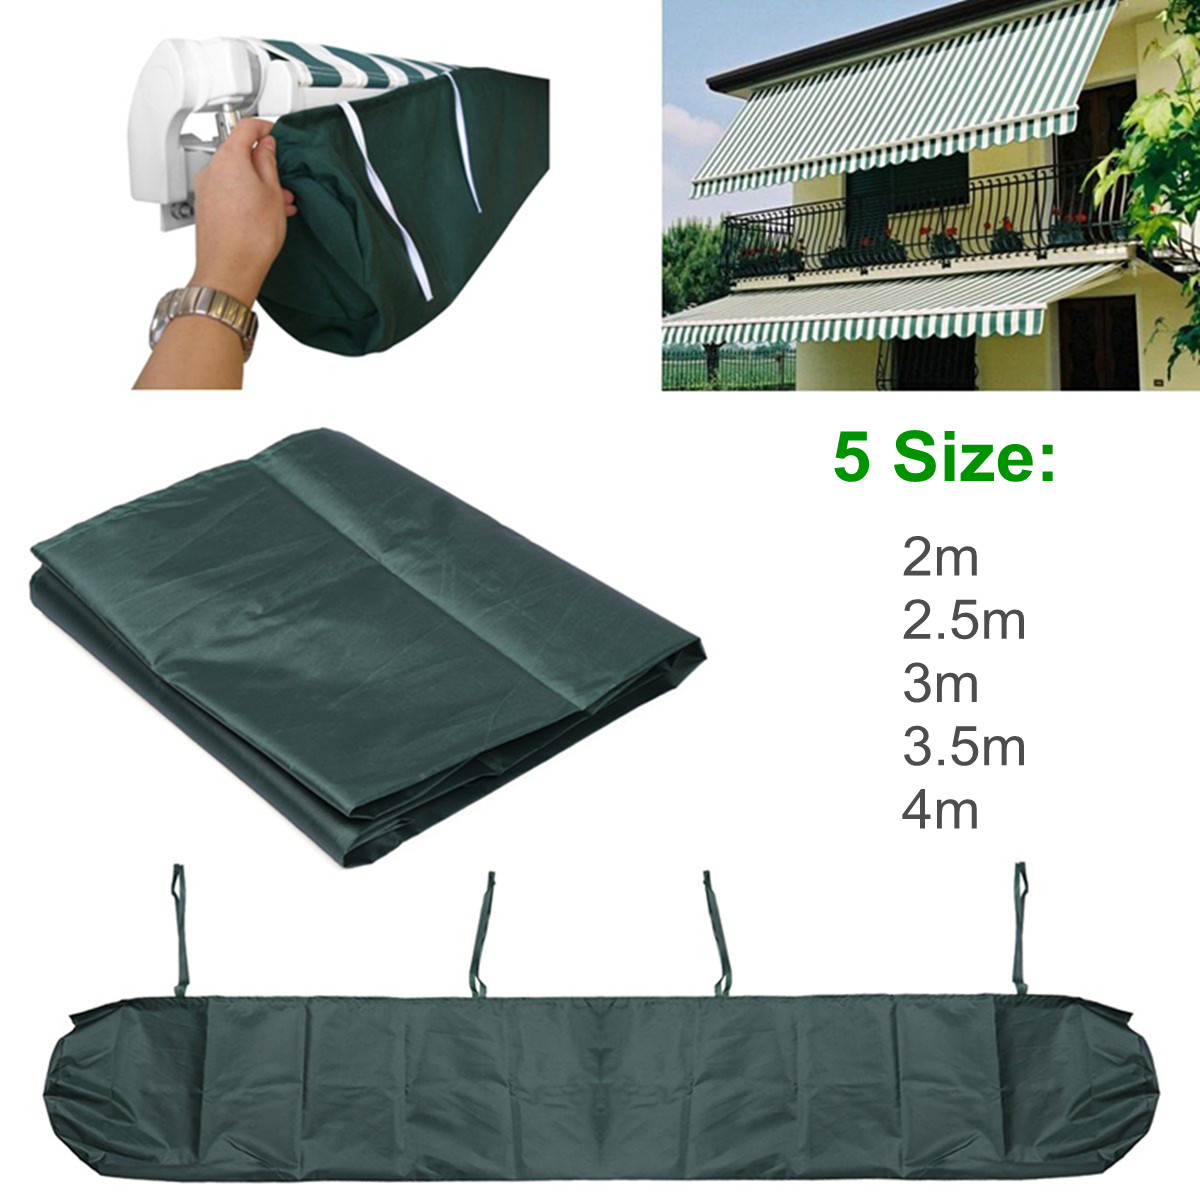 Us 7 46 54 Off Green 5 Sizes Patio Awning Storage Bag Winter Rain Weather Cover Protector Sun Canopy Shelter Waterproof Shade Accessories In Awnings